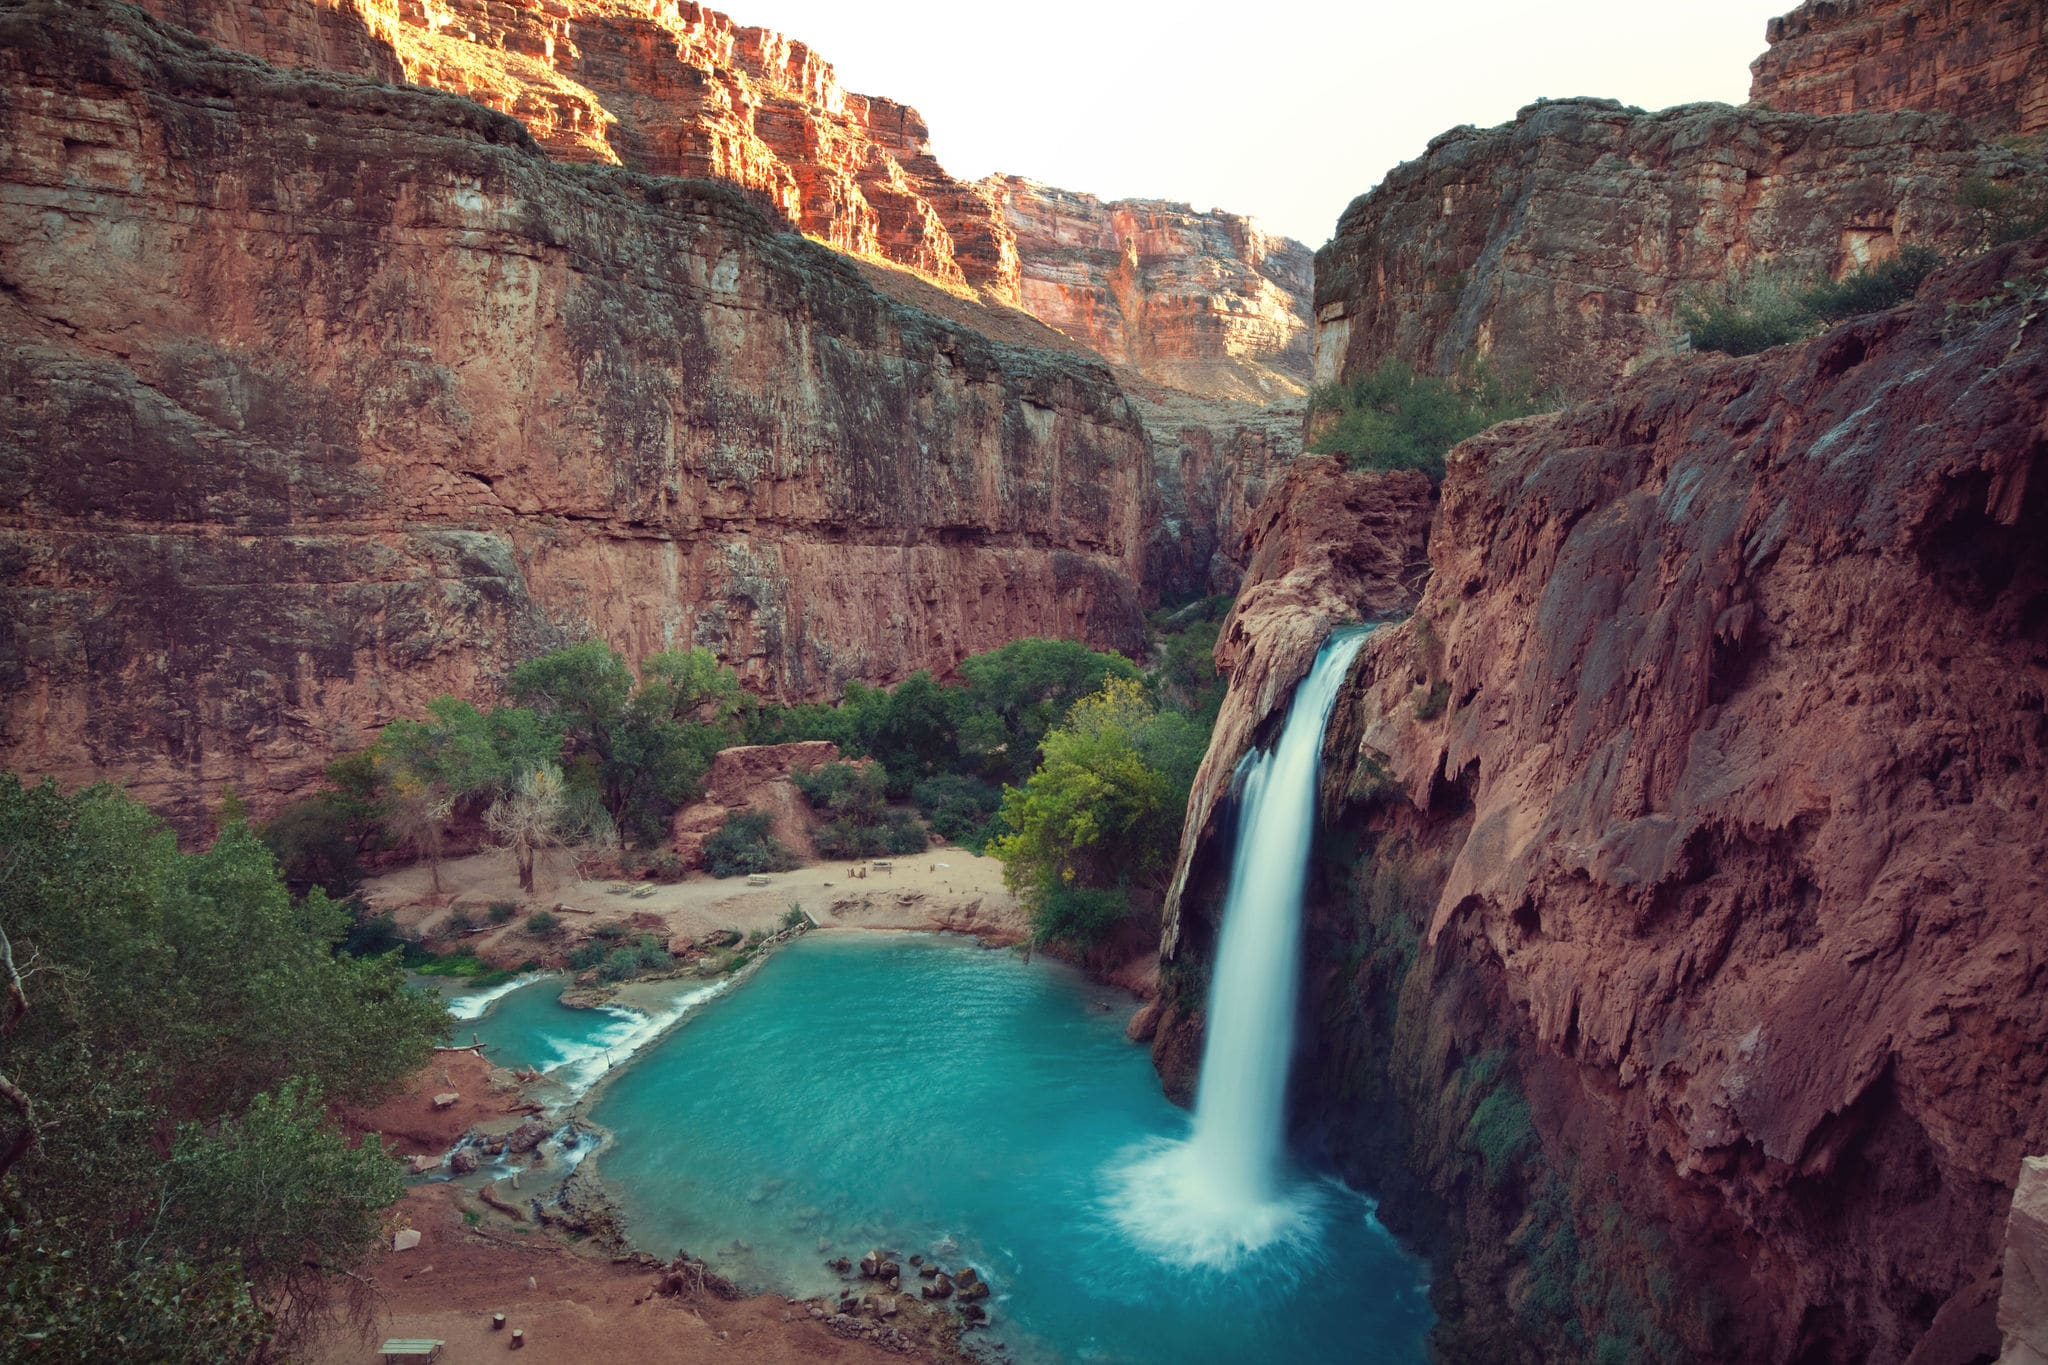 Hawasu waterfall in the Havasupai Reservation in Supai, Arizona in the Southwest corner of the Grand Canyon.